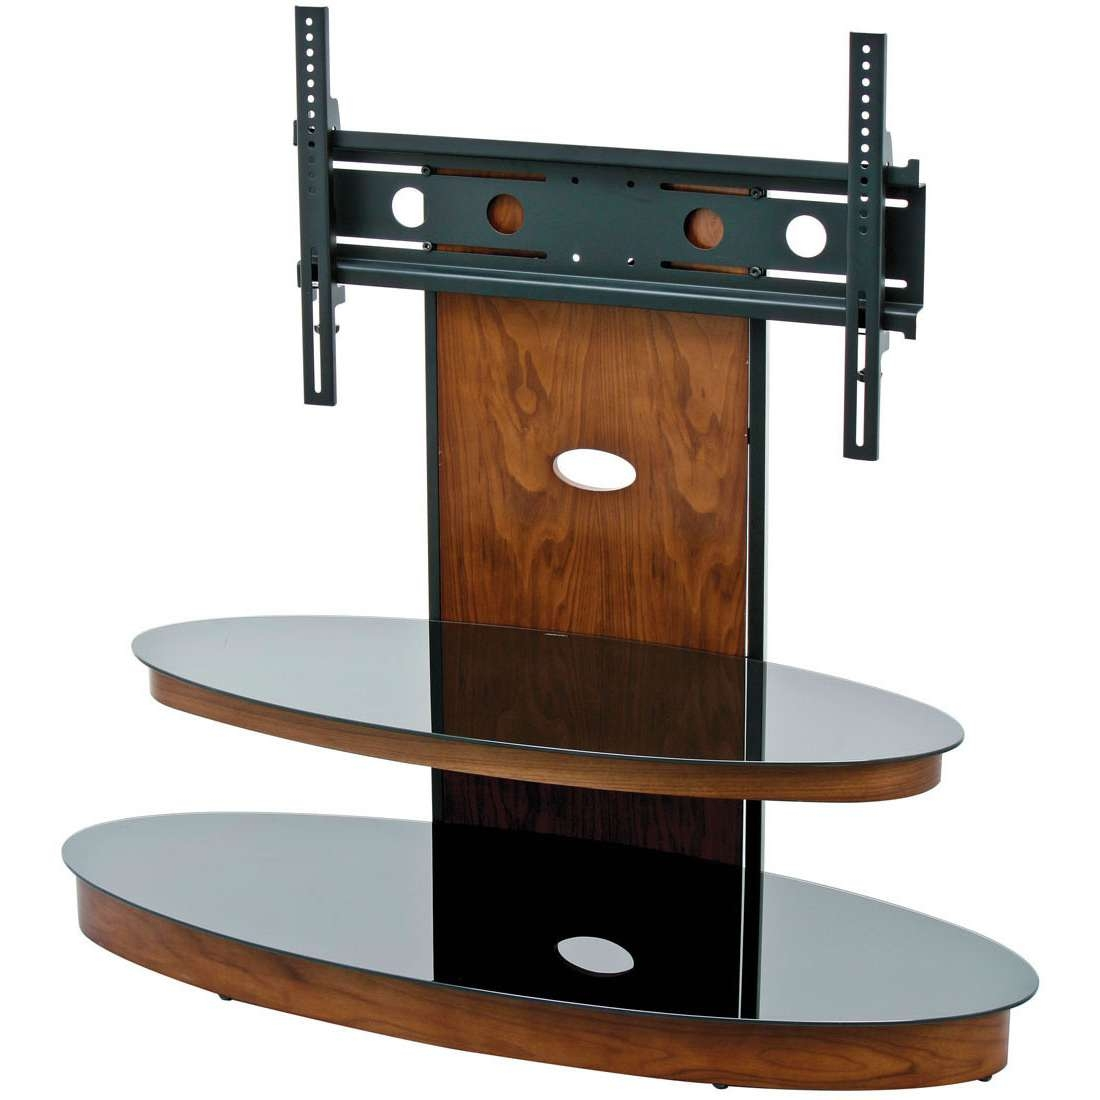 Tv : Bghlq Beautiful Cantilever Tv Stands Mountright Cantilever Regarding Cantilever Glass Tv Stands (View 16 of 20)